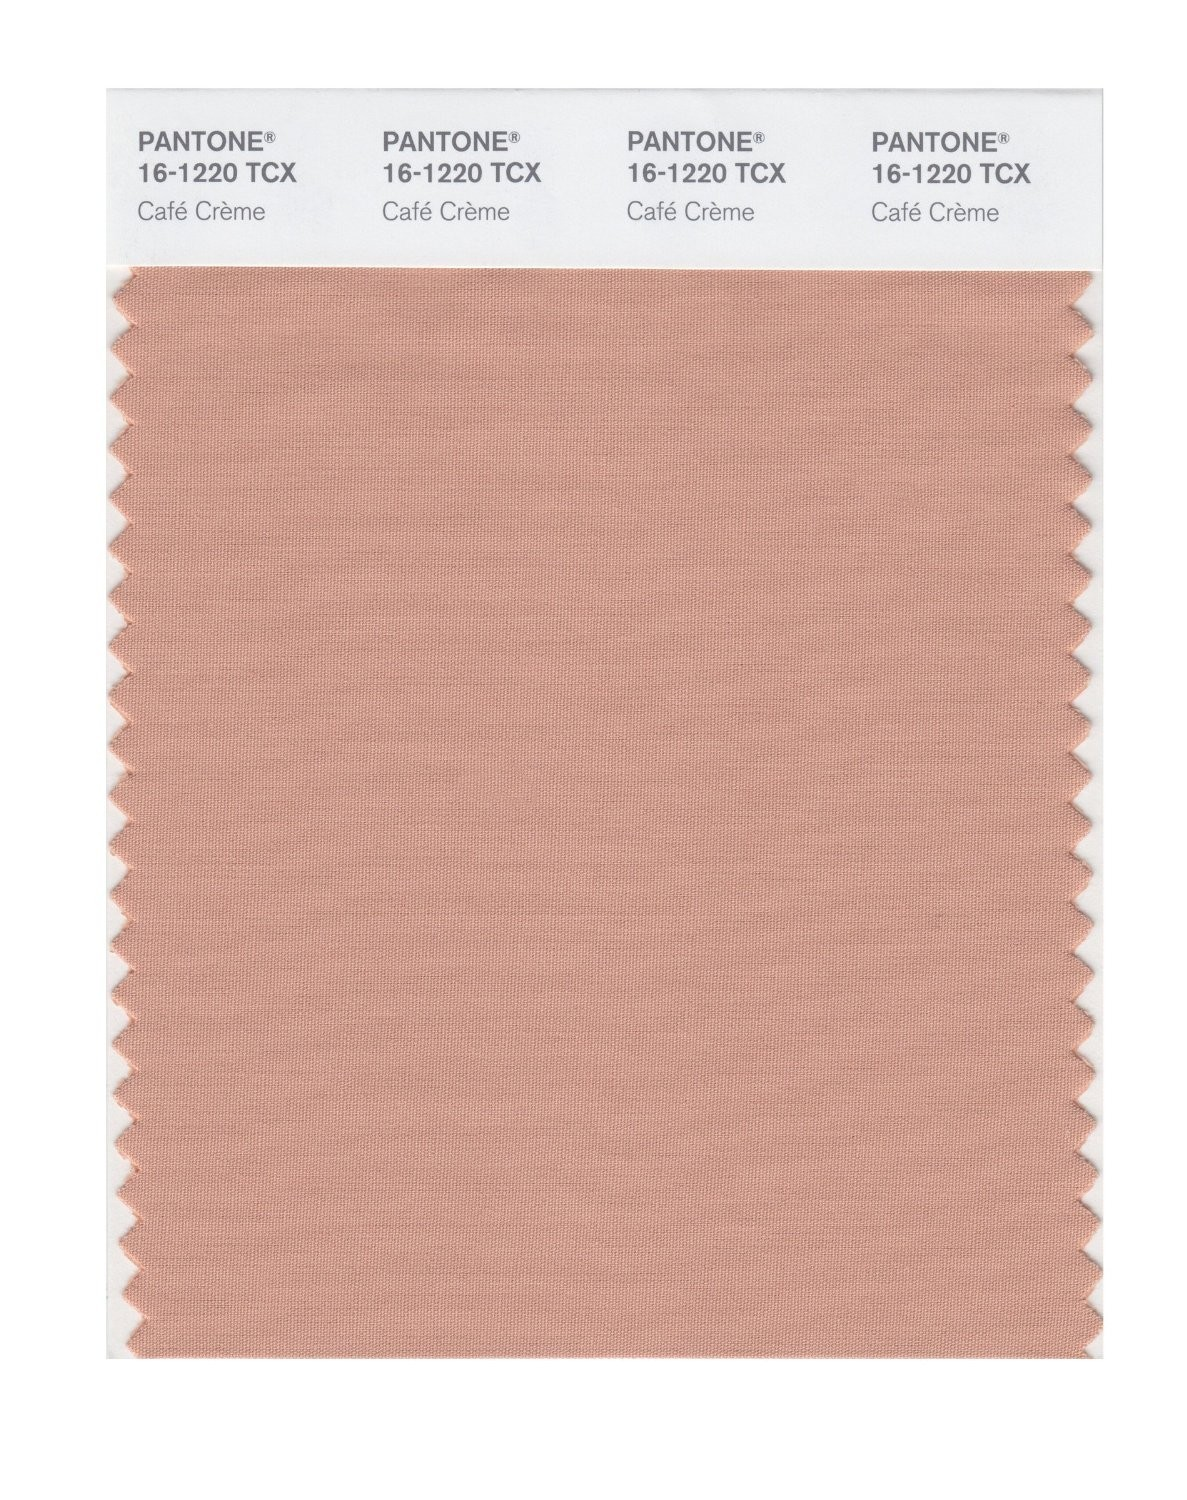 Pantone 16-1220 TCX Swatch Card Cafe Creme